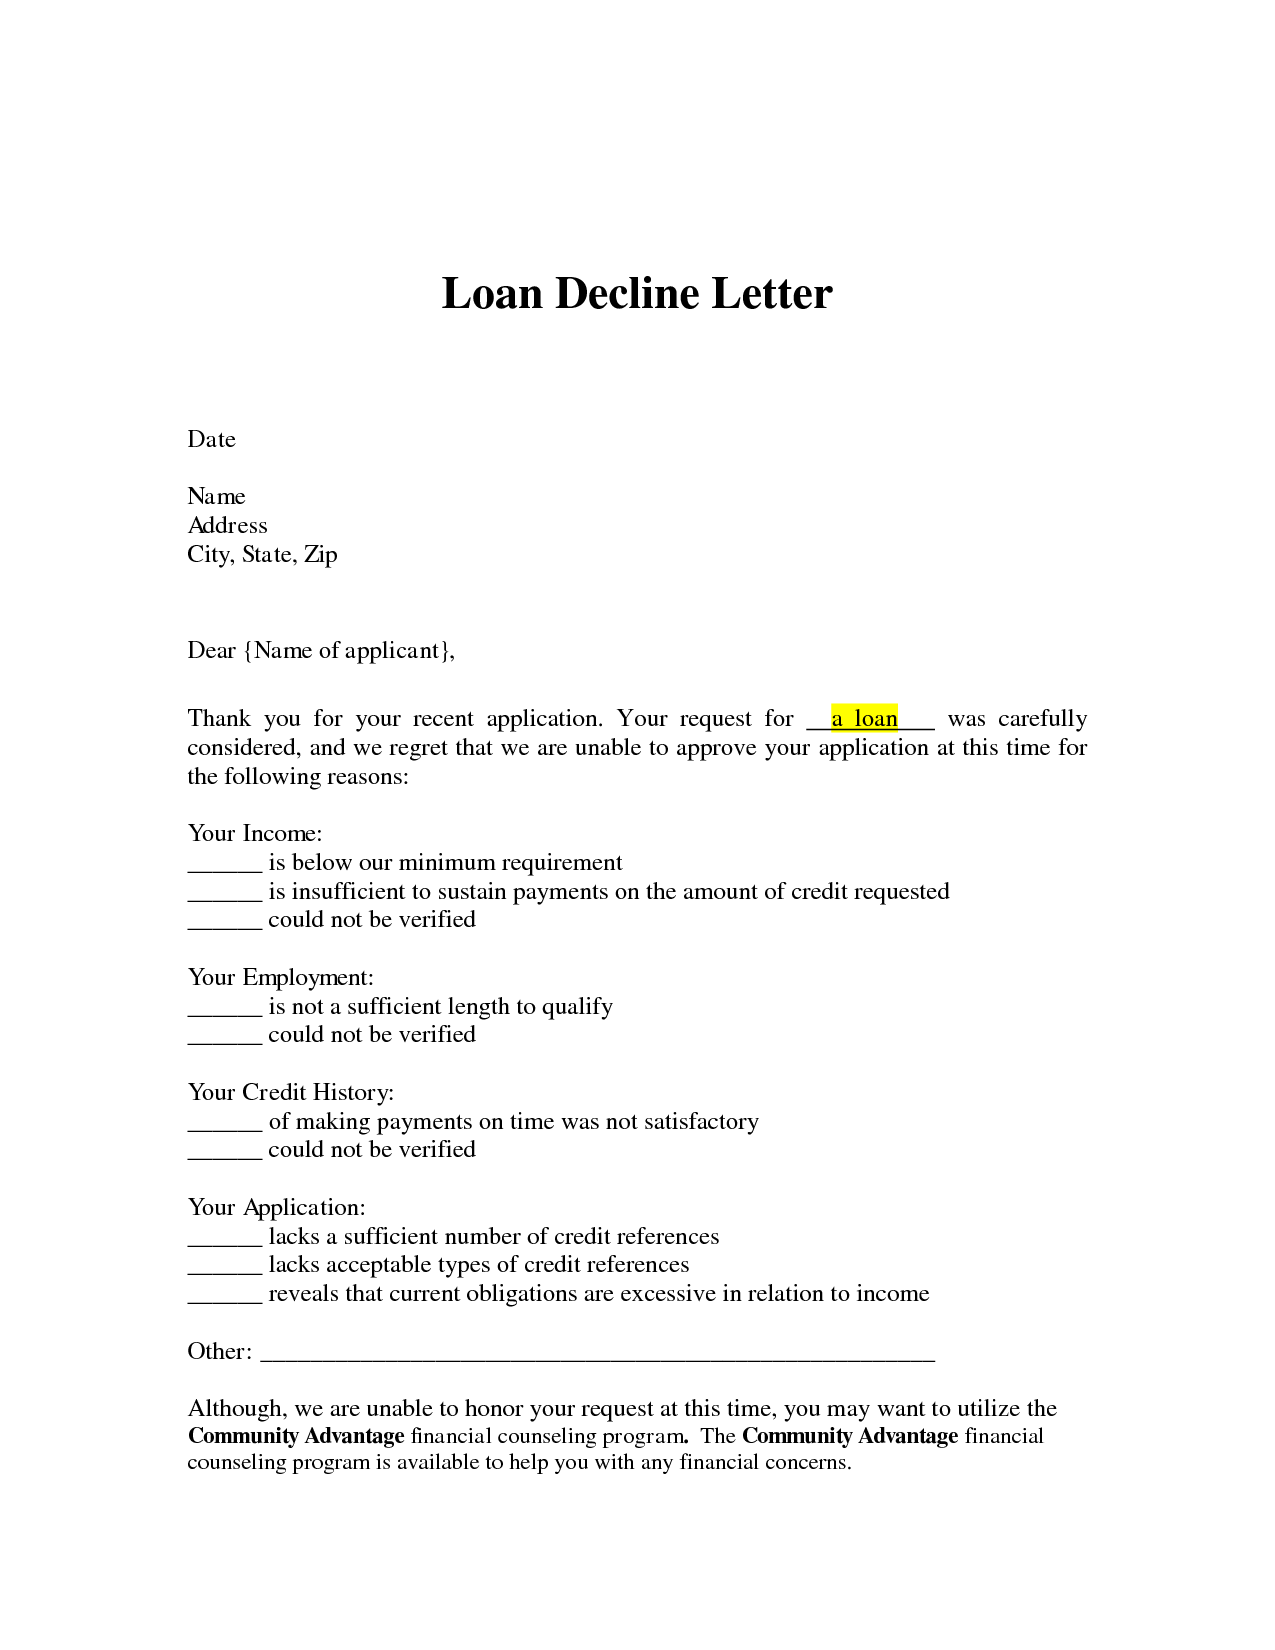 Loan decline letter loan denial letter arrives you can for Loan denial letter template